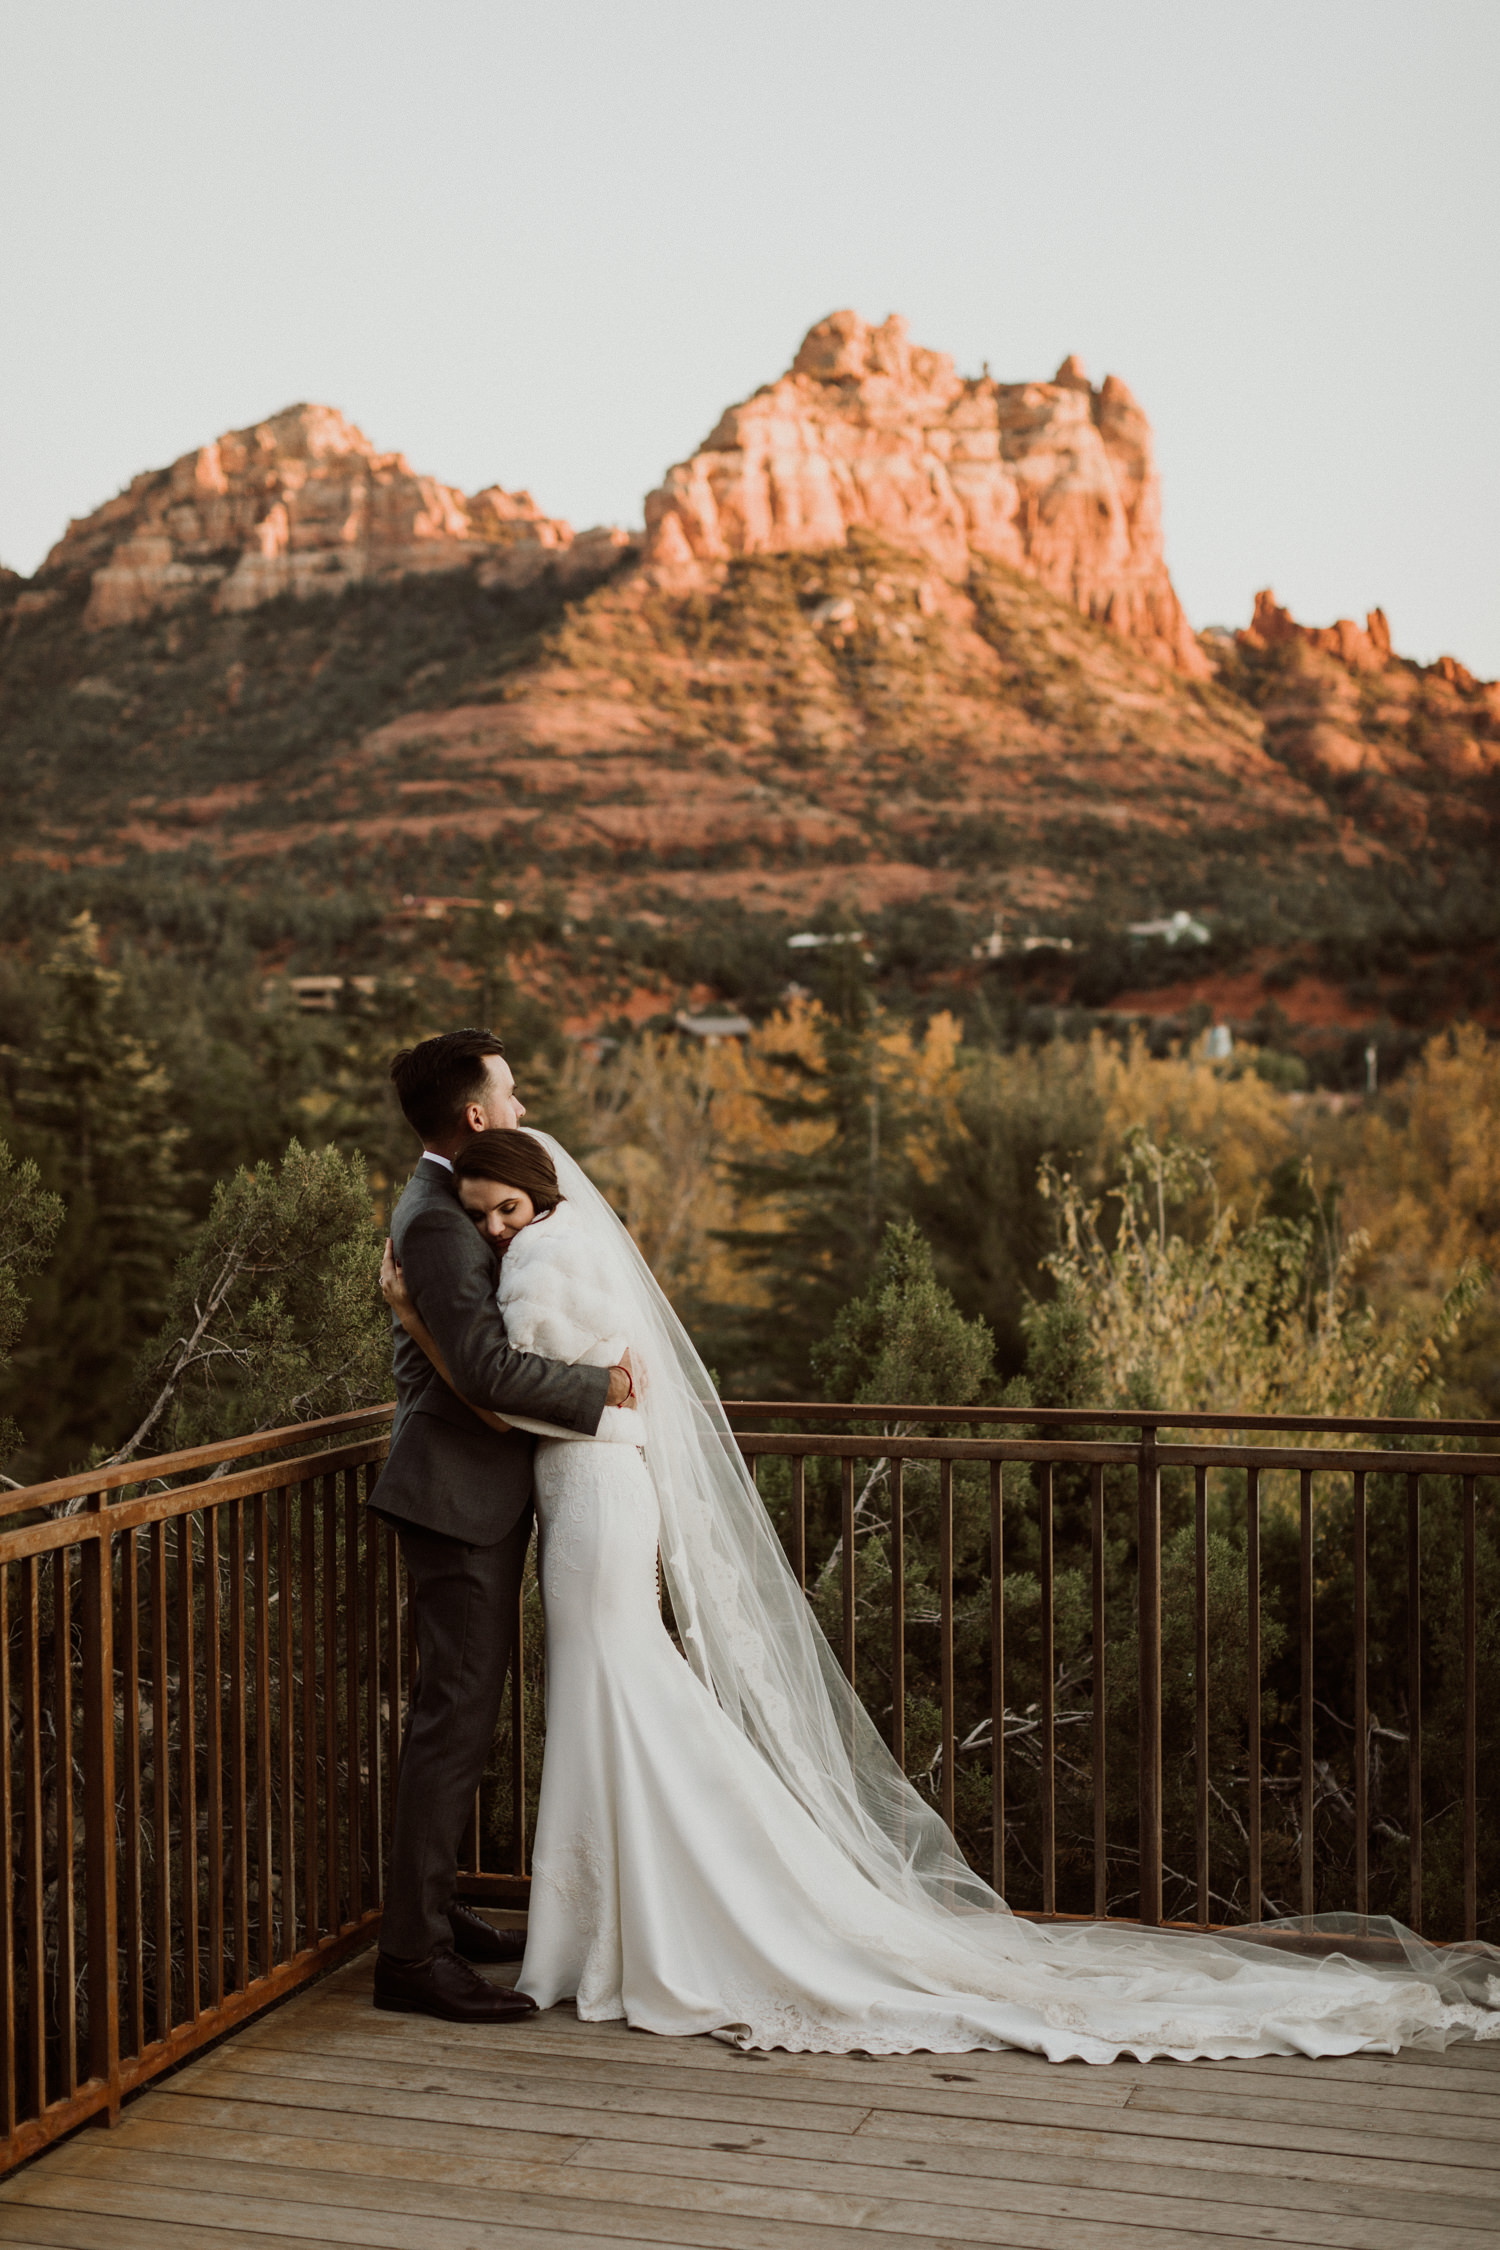 41_intimate-sedona-arizona-wedding-59.jpg